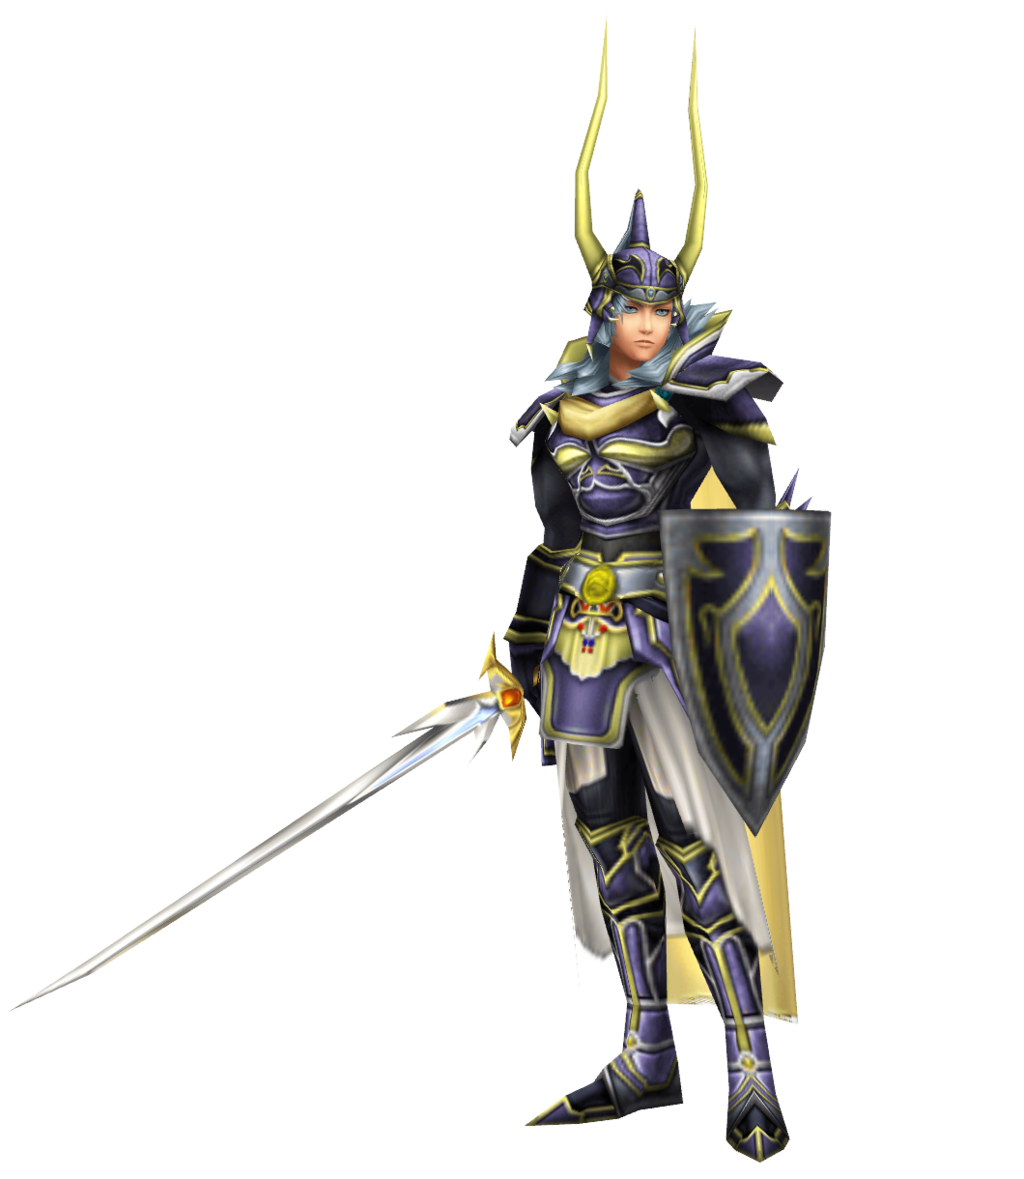 dissidia 012 warrior of light image mod db